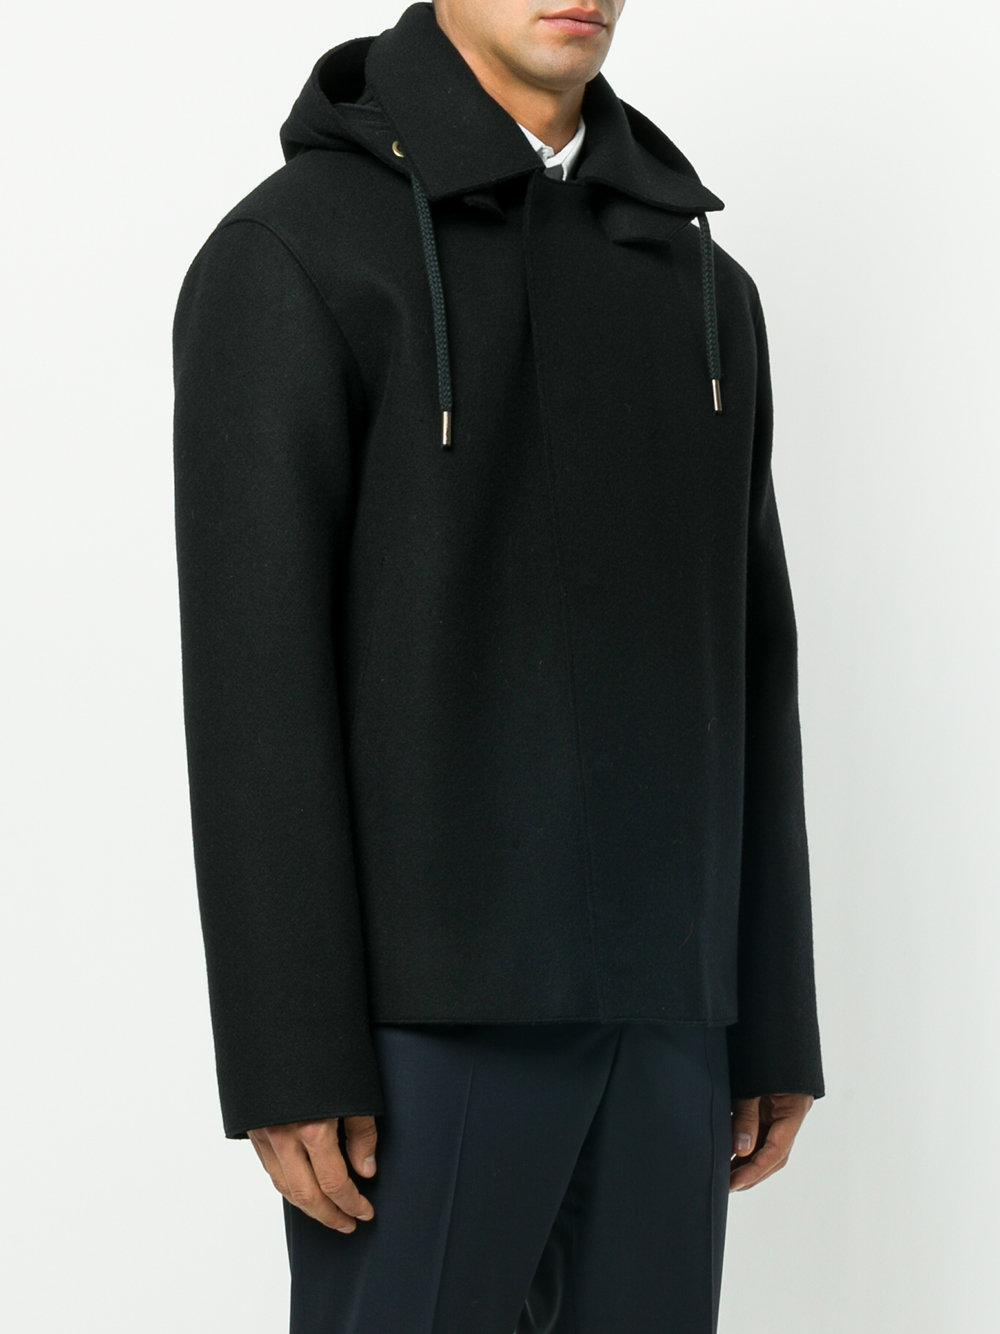 lyst jil sander hooded jacket in black for men. Black Bedroom Furniture Sets. Home Design Ideas